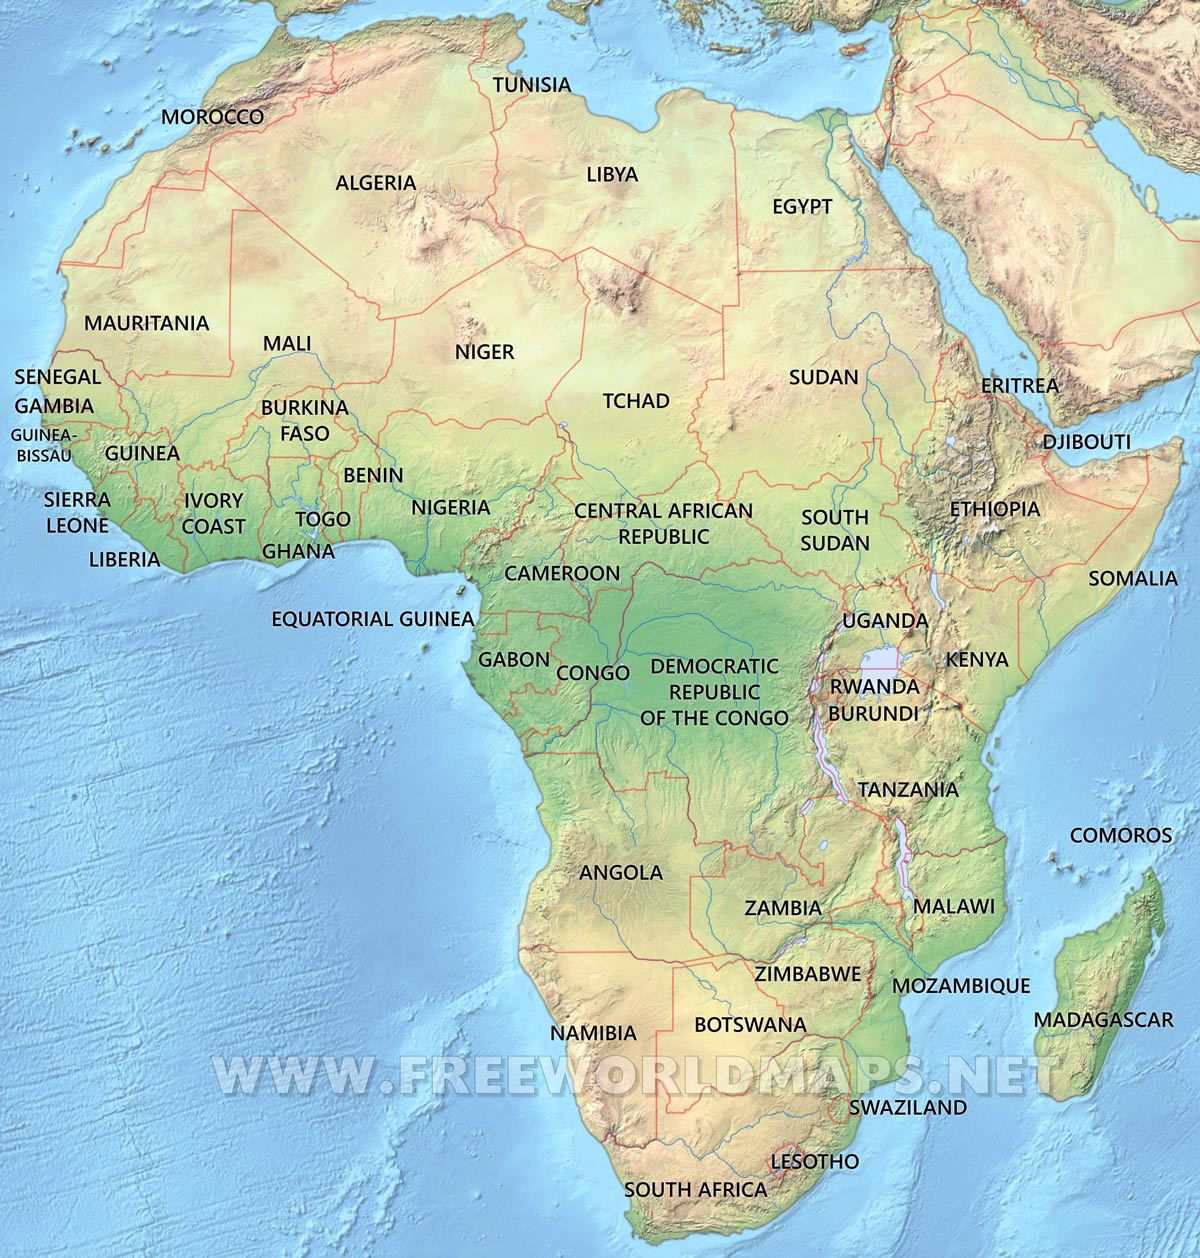 Africa physical map freeworldmaps africa physical map publicscrutiny Image collections